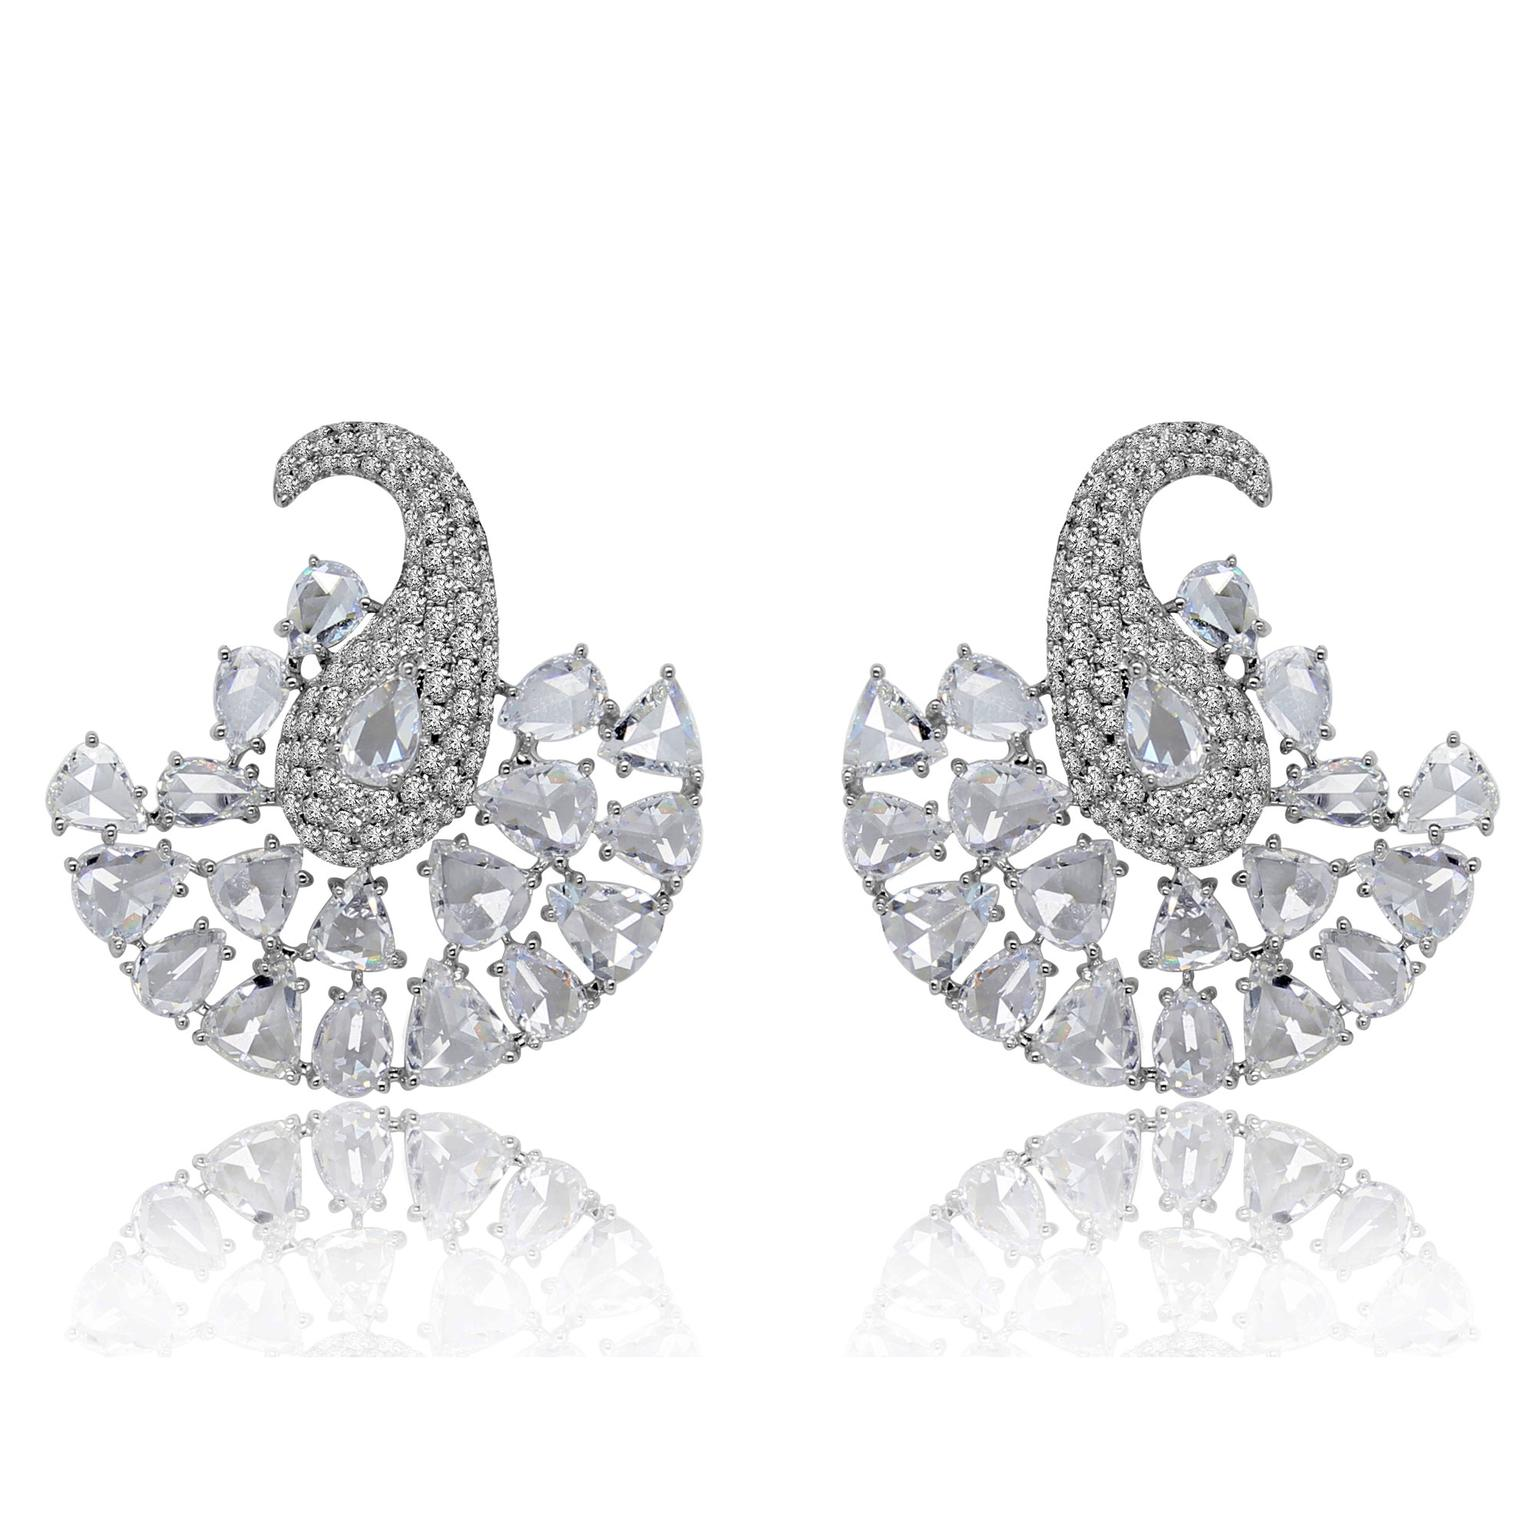 Sutra diamond earrings